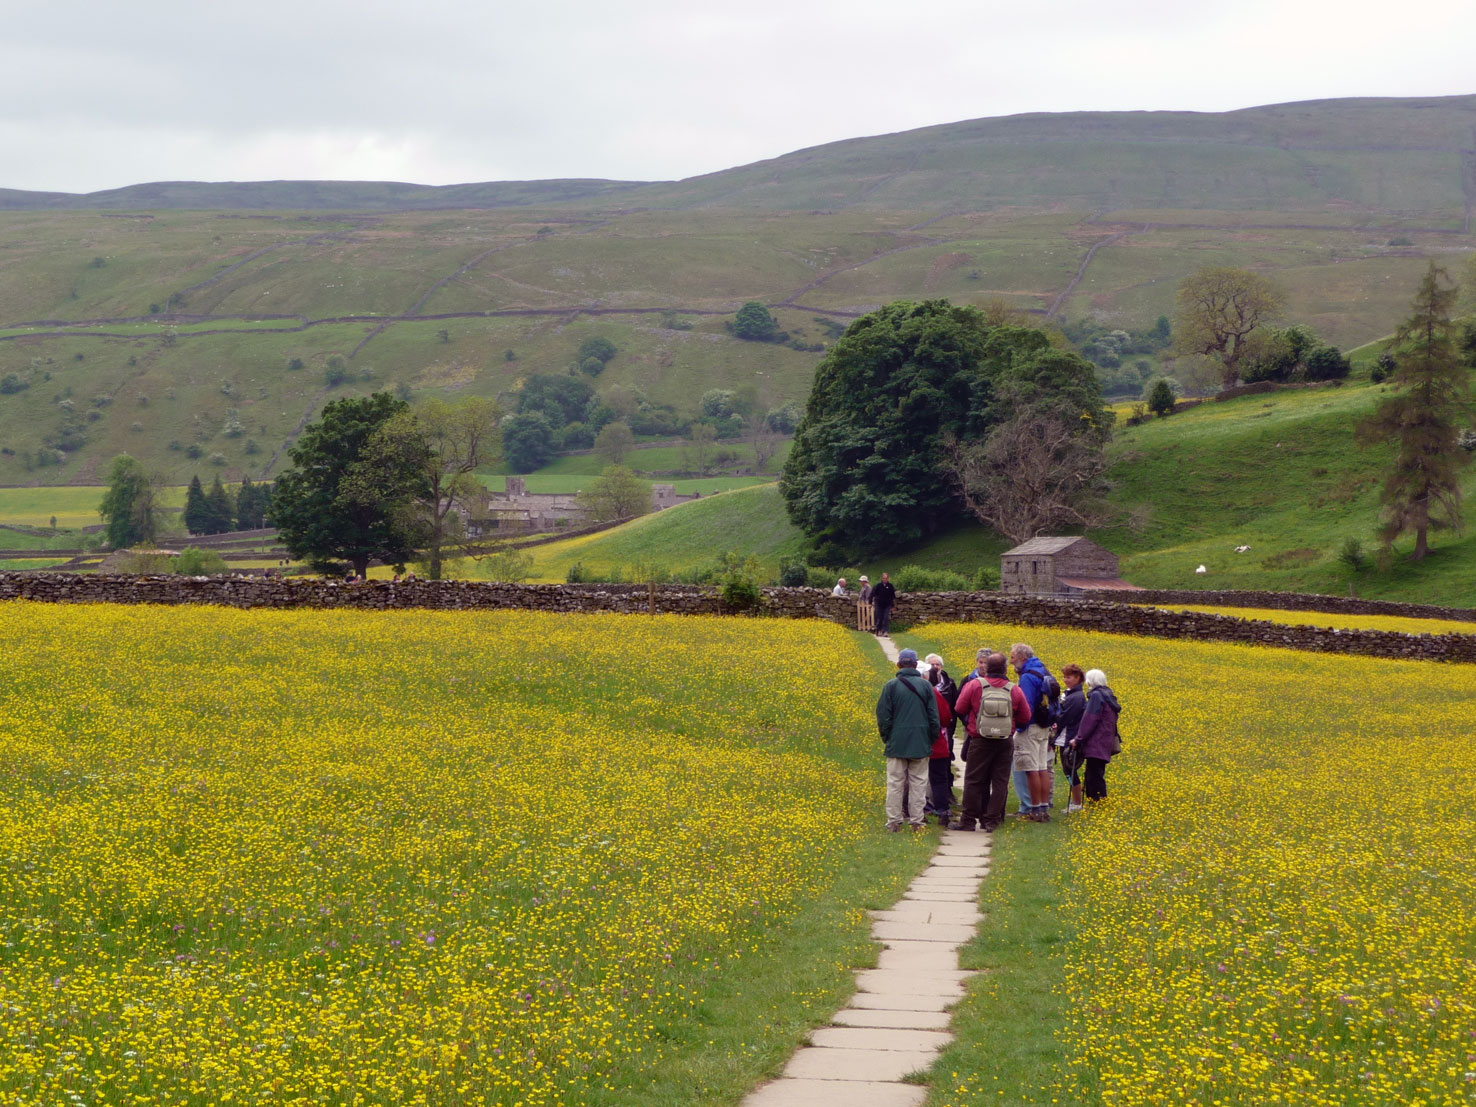 Muker wildflower meadows, Swaledale in the Yorkshire Dales